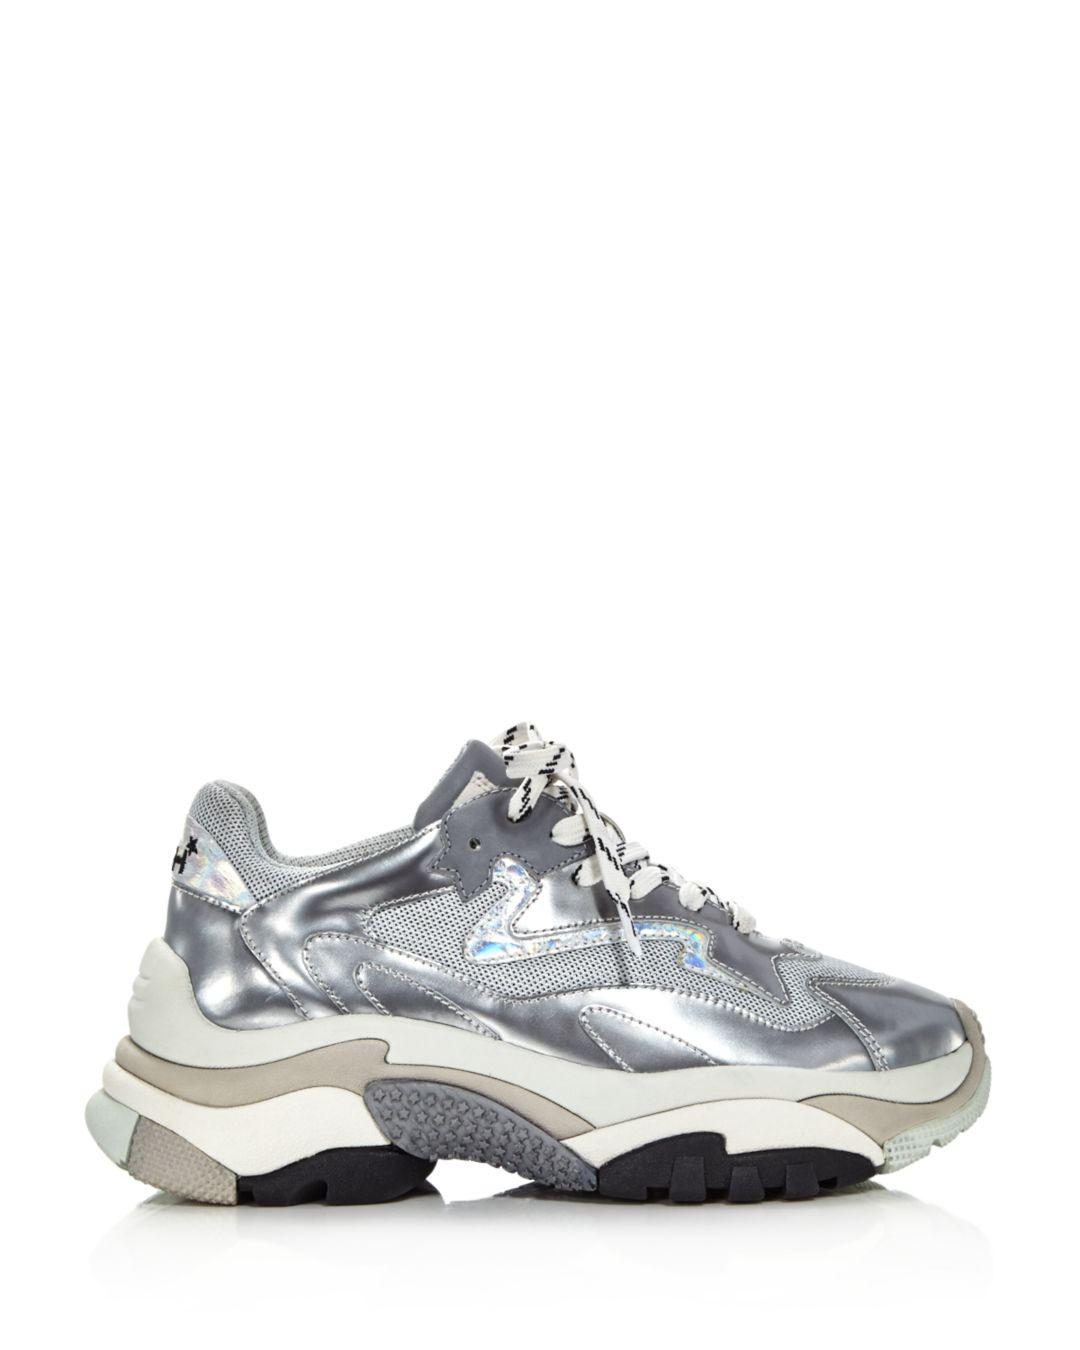 3f4bad6187ed Lyst - Ash Women s Addict Leather Lace Up Sneakers in Metallic